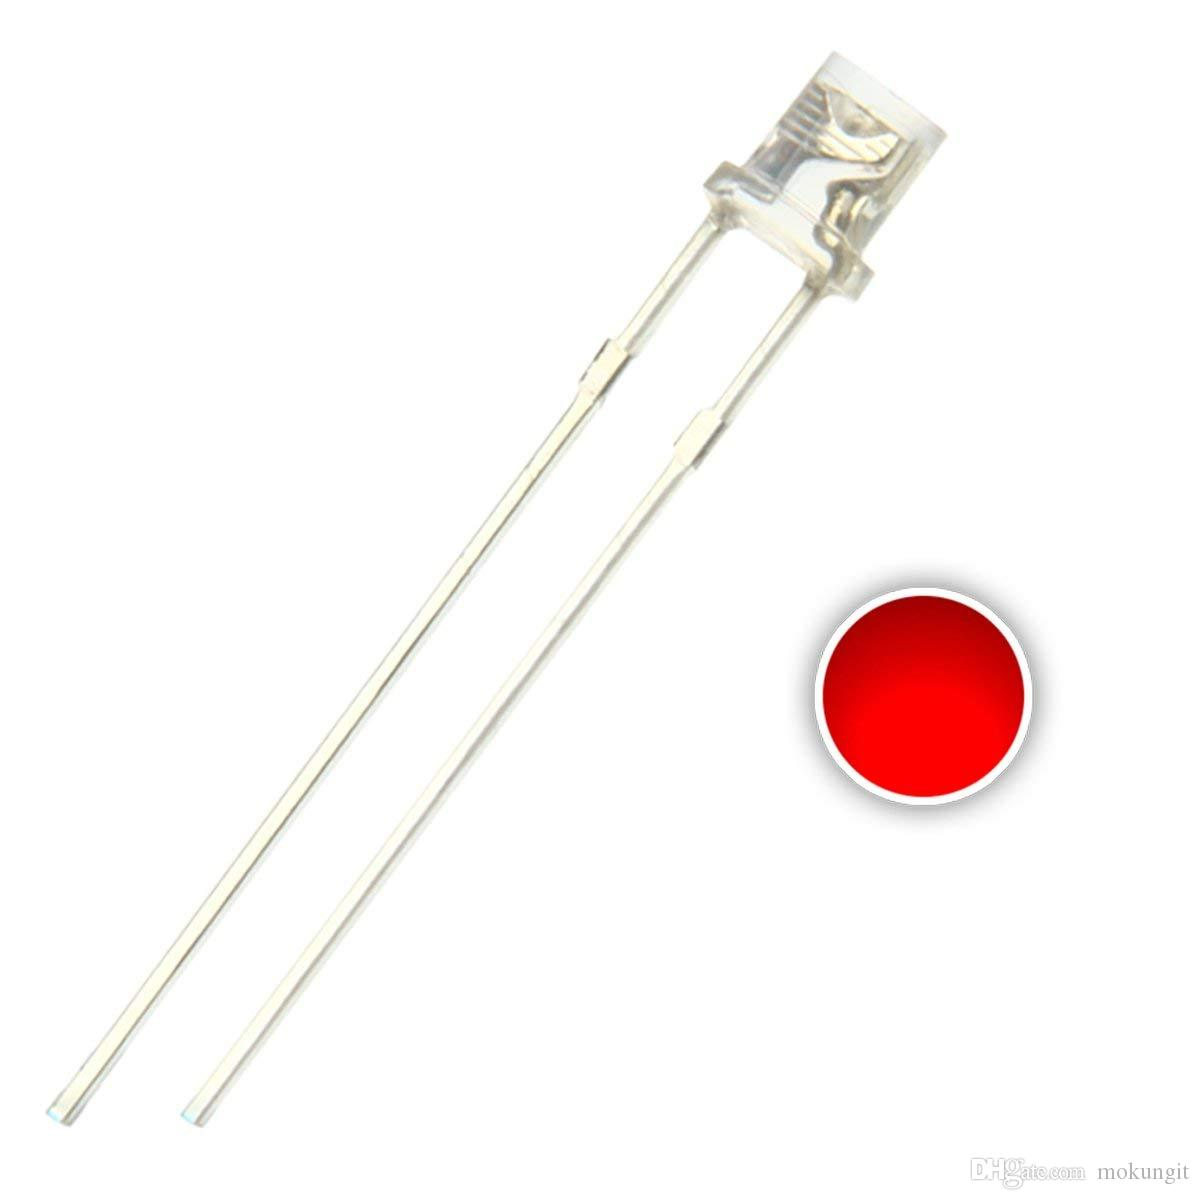 100 pcs 3mm Red LED Diode Lights (Clear Transparent Flat Top DC 2V 20mA) Bright Lighting Bulb Lamps Electronics Components Light Emitting